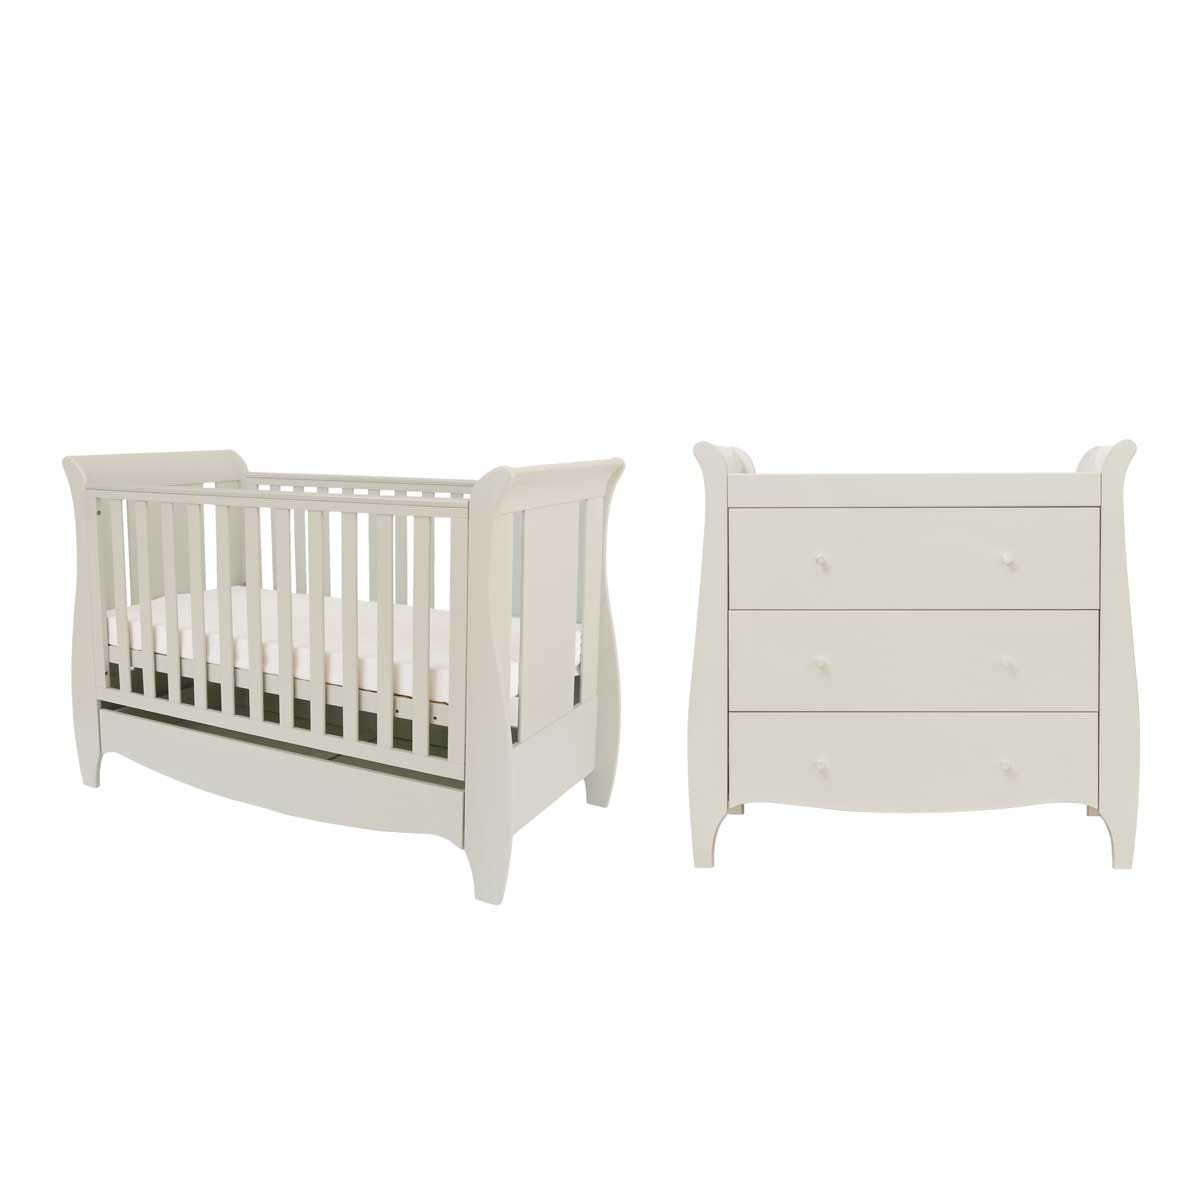 Tutti Bambini Roma Mini 2 Piece Cot Bed and Chest Changer Room Set - Linen